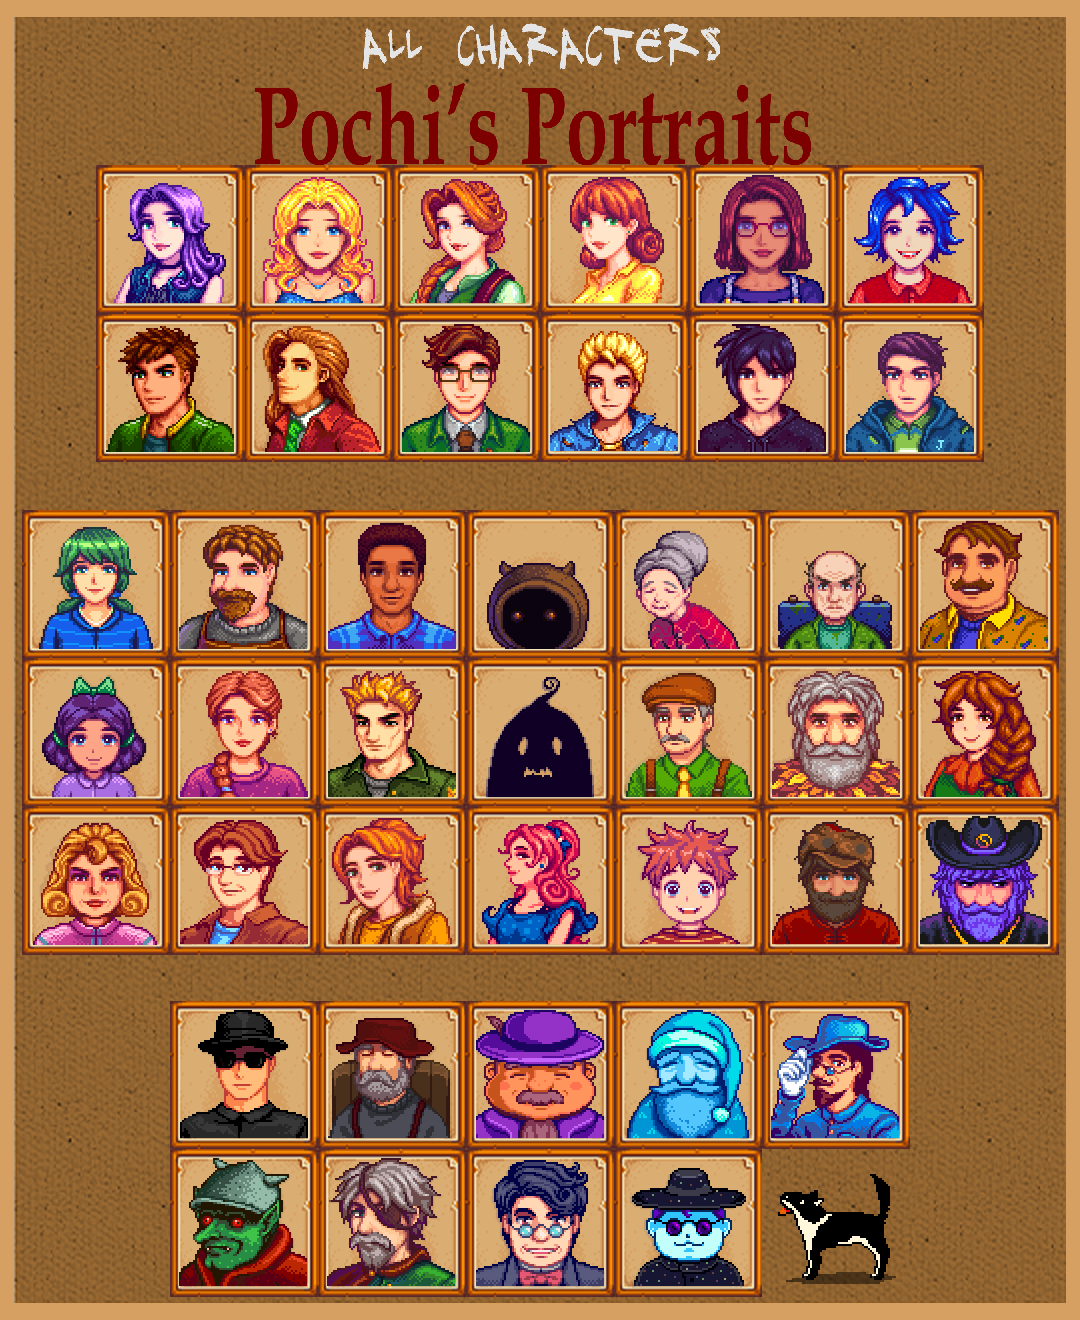 Fair And Balanced >> Pochi's portraits mod at Stardew Valley Nexus - Mods and community